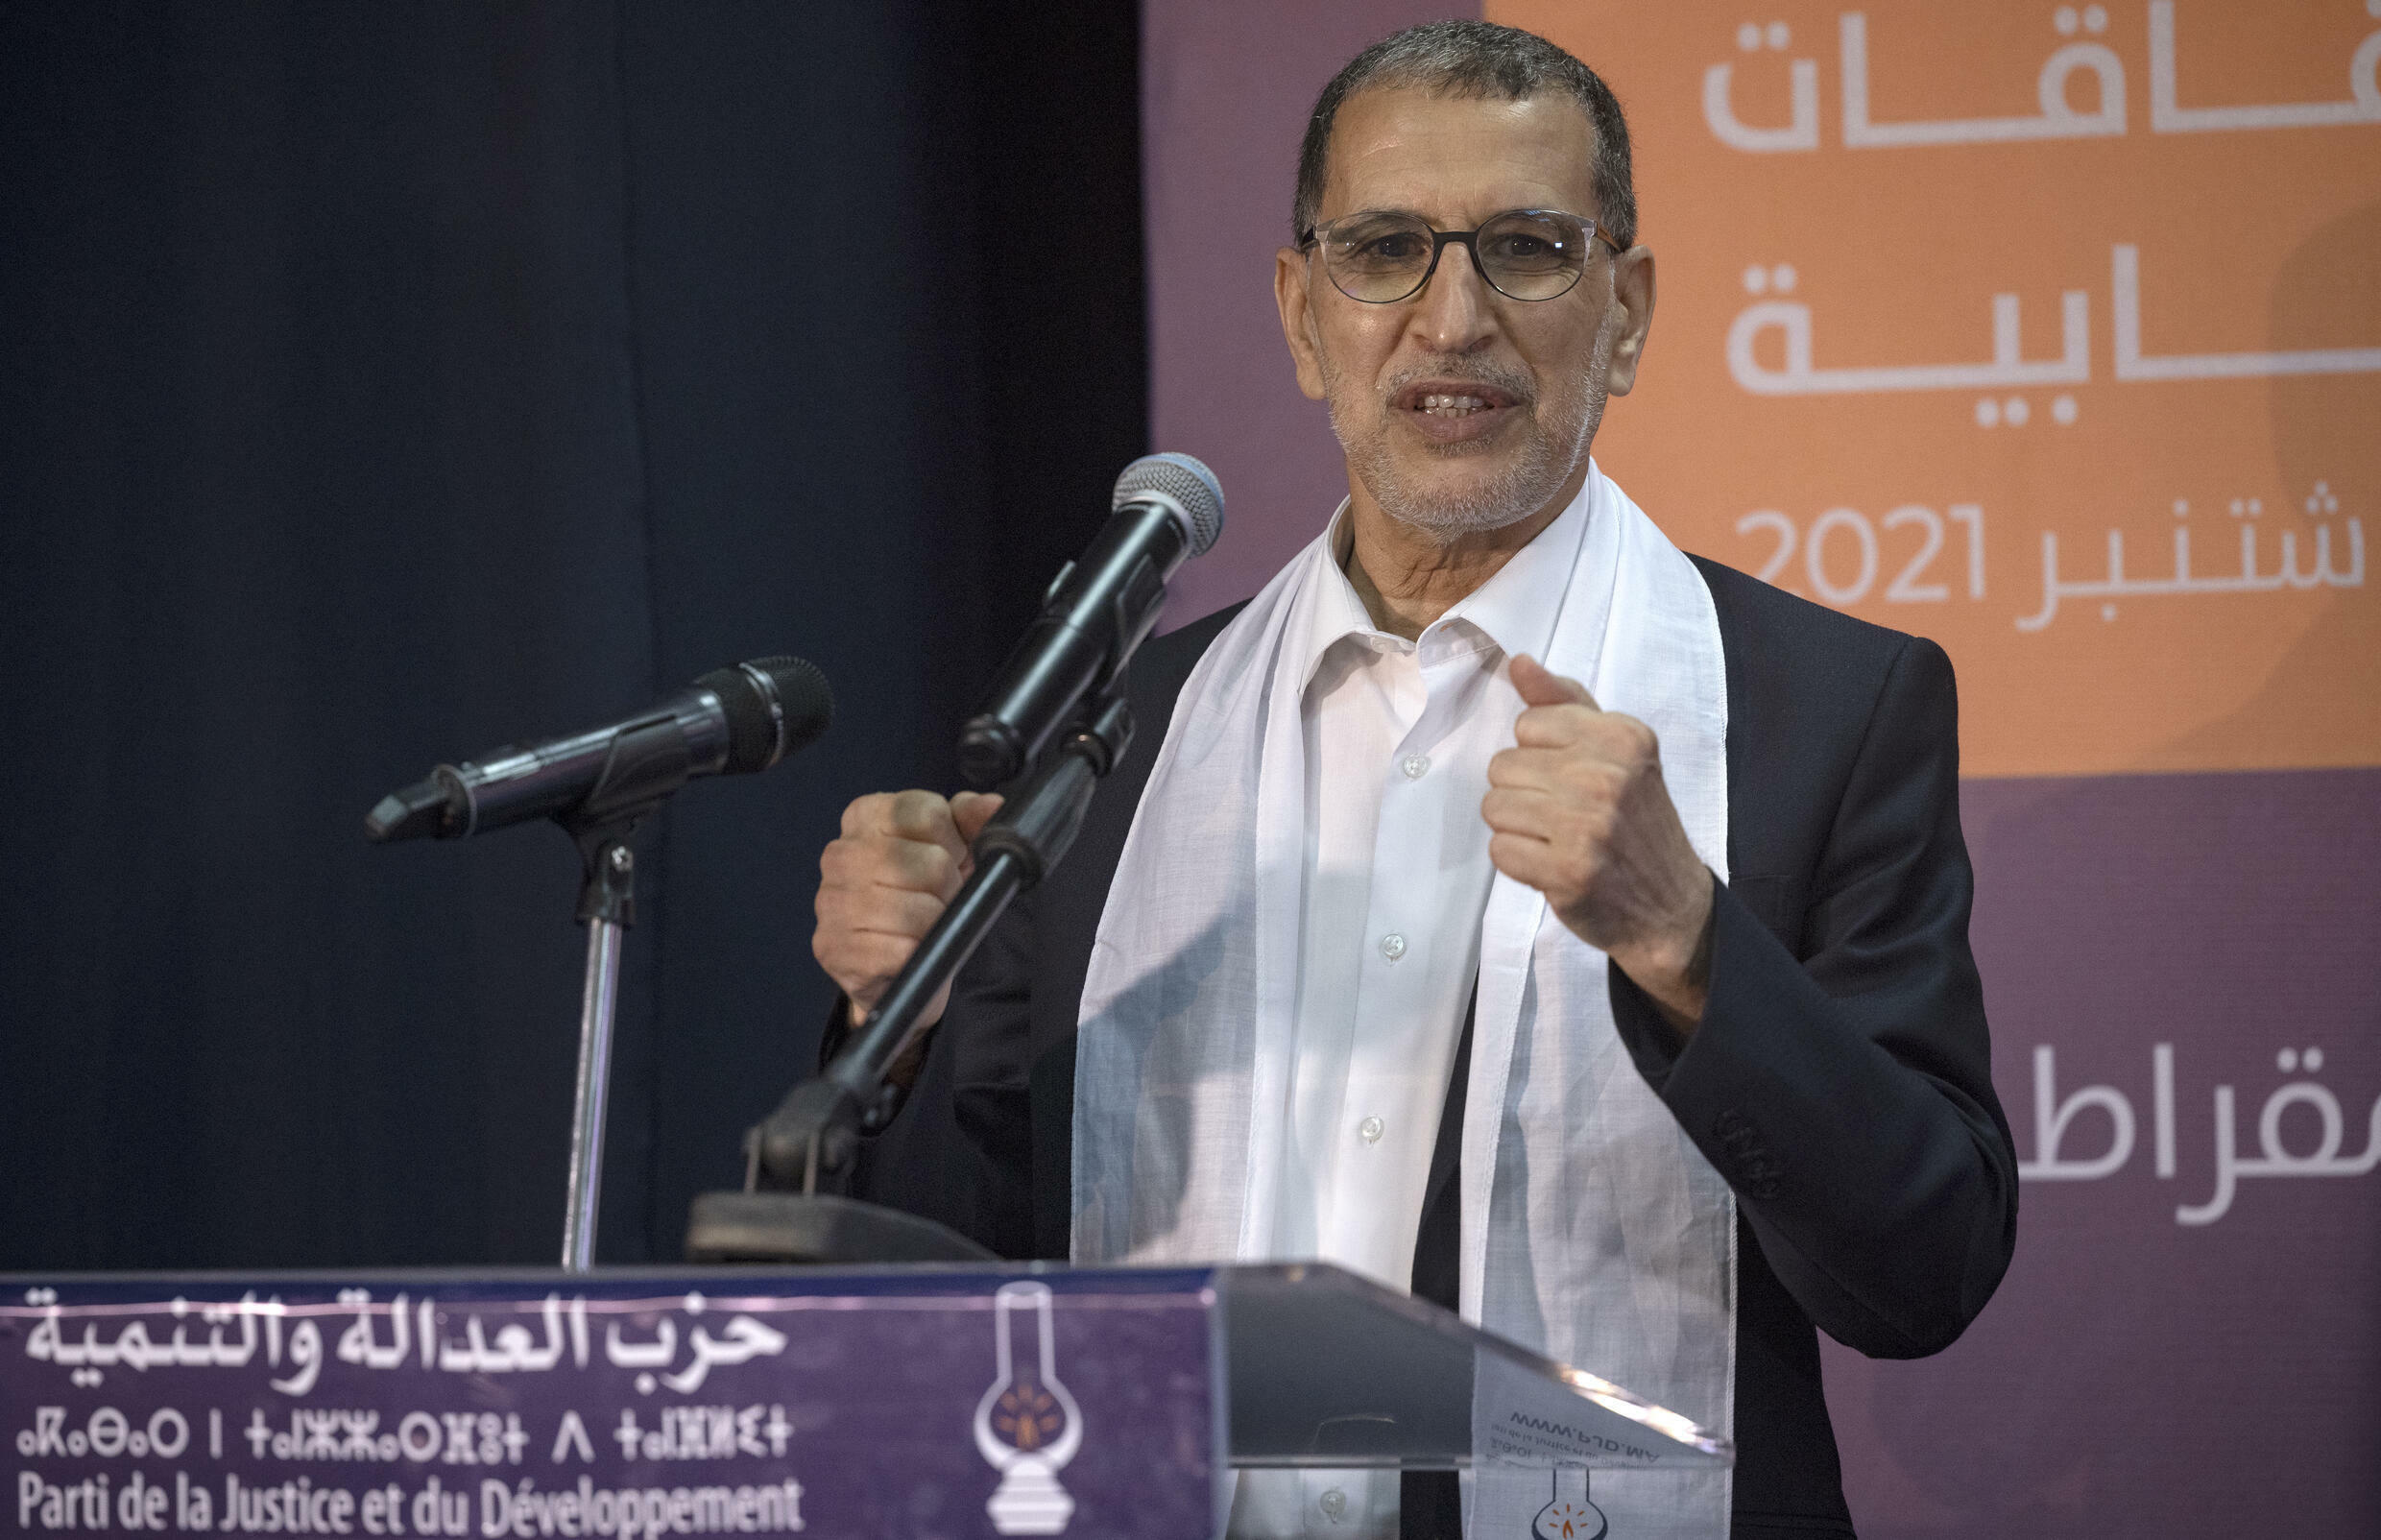 PJD chief Saad-Eddine El Othmani hopes to be reelected as Morocco's prime minister on September 8